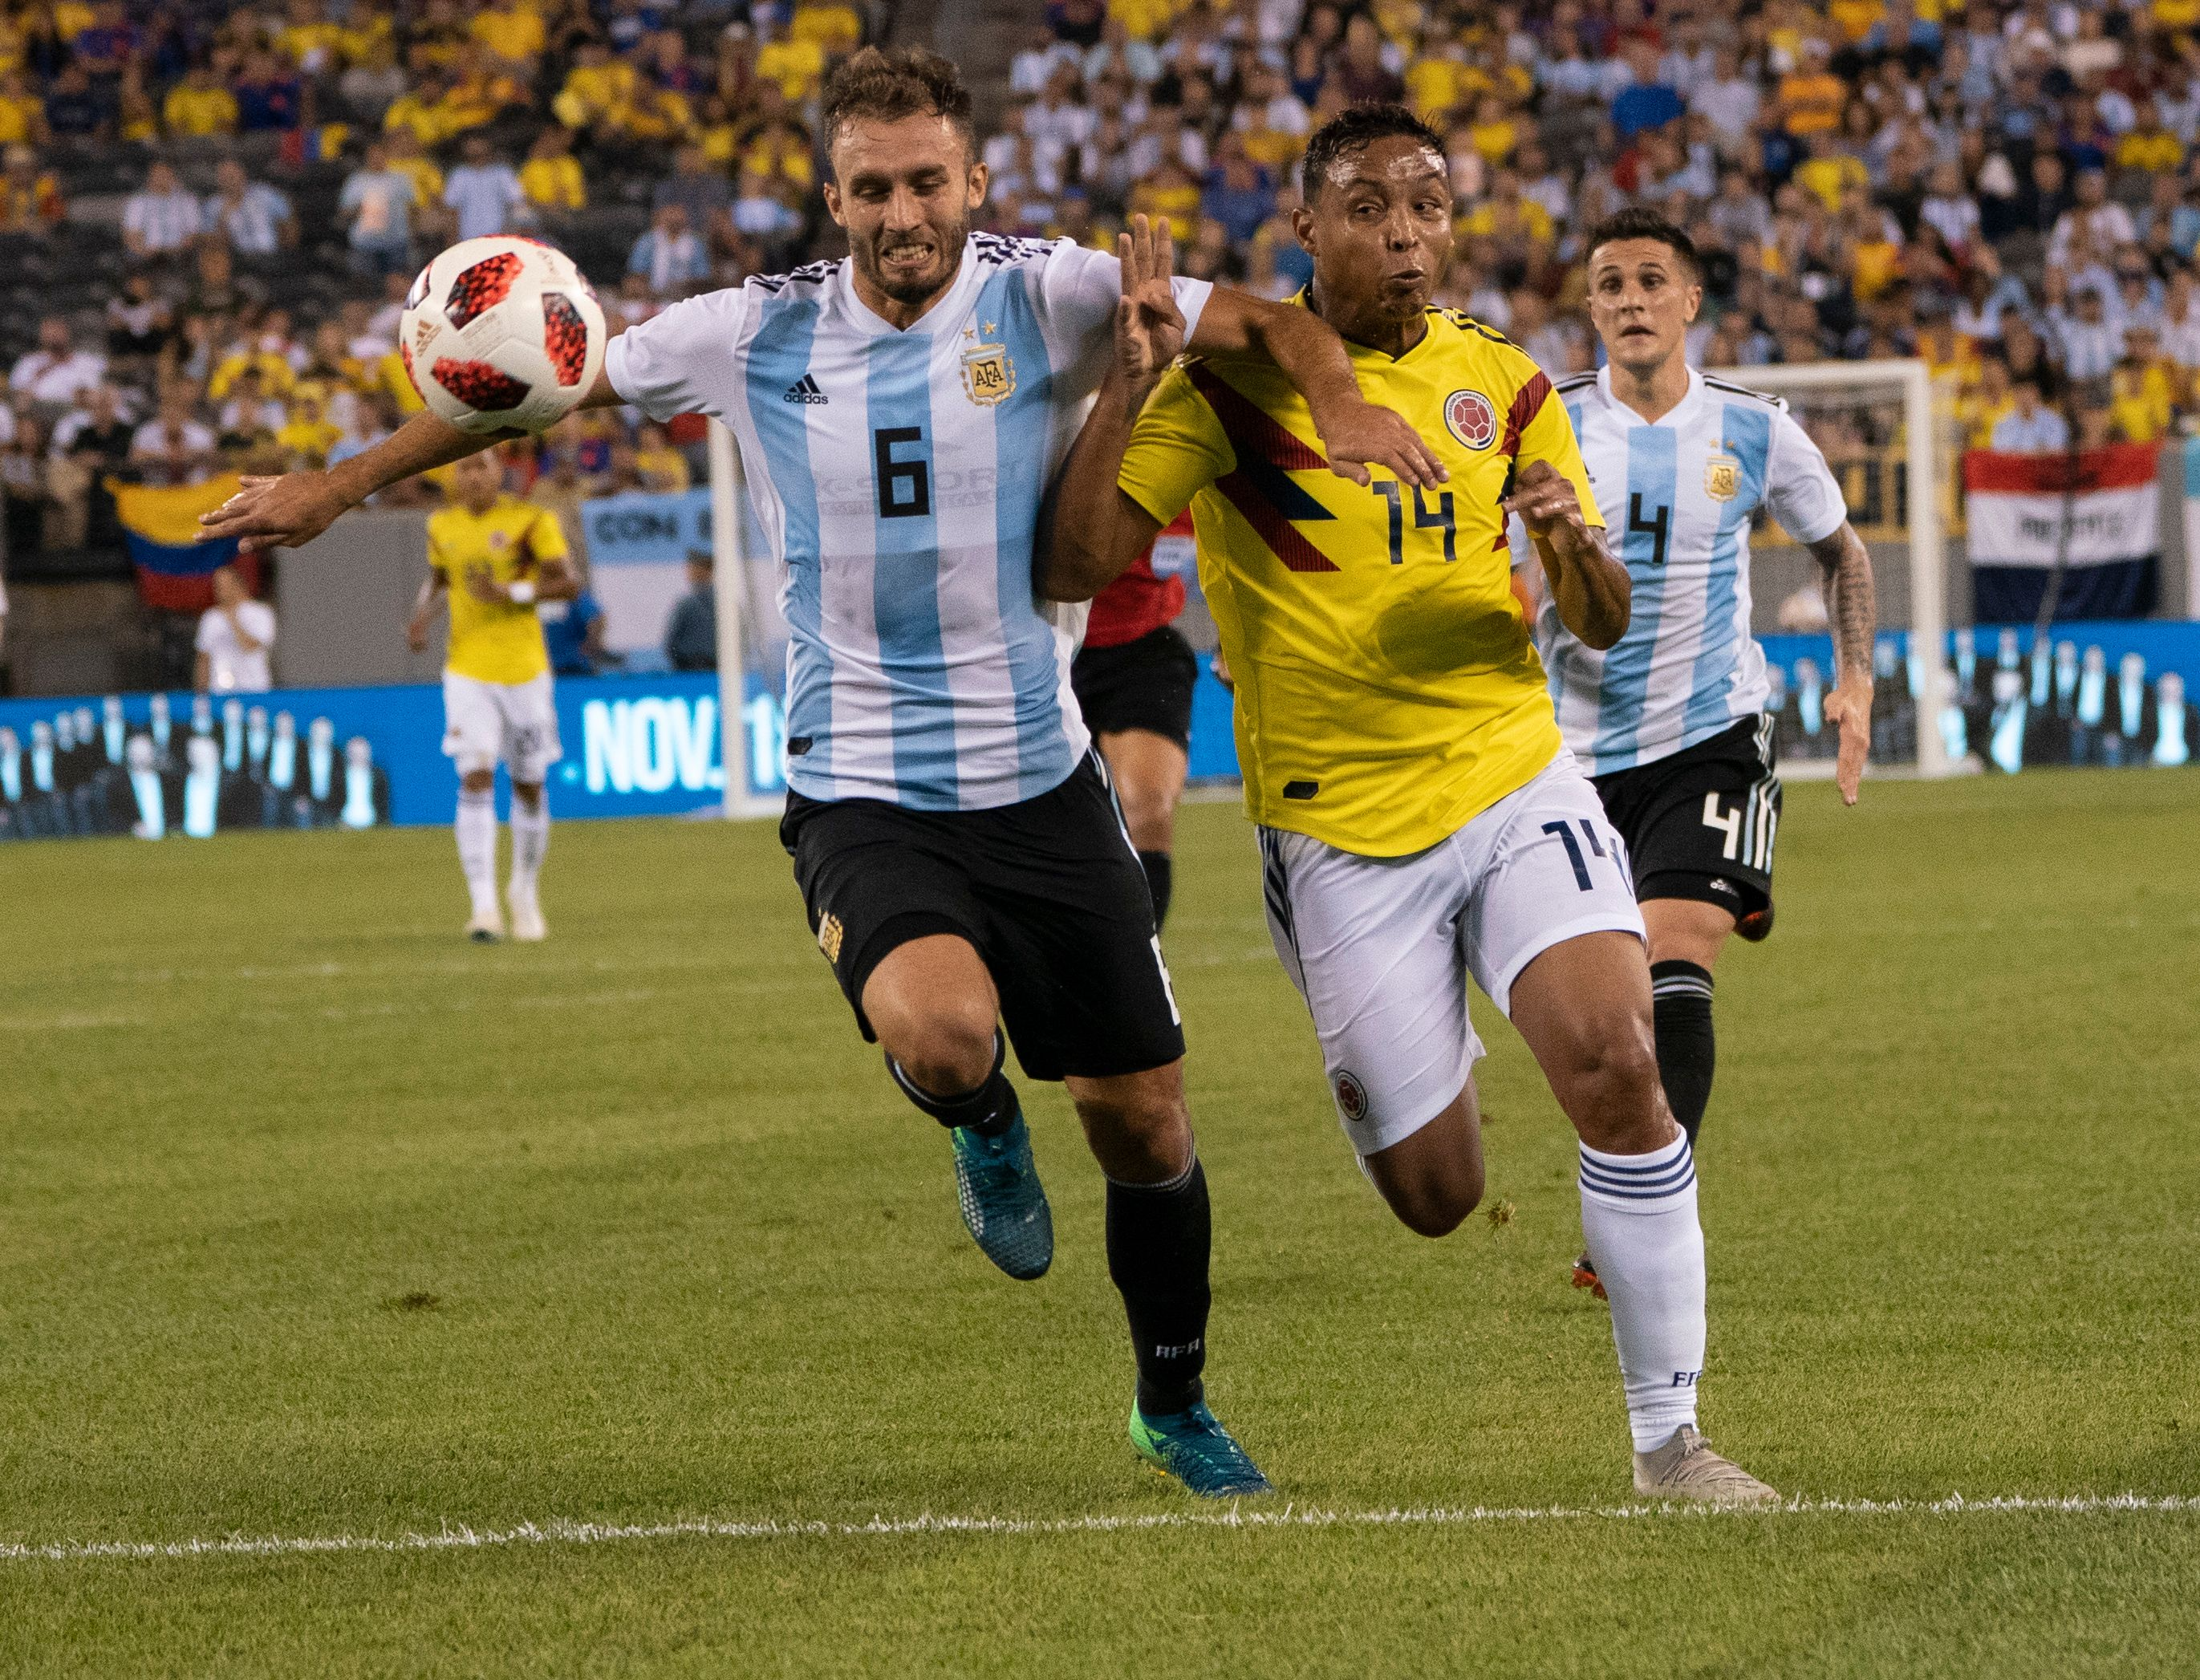 Luis Muriel Colombia - Argentina Amistoso 2018